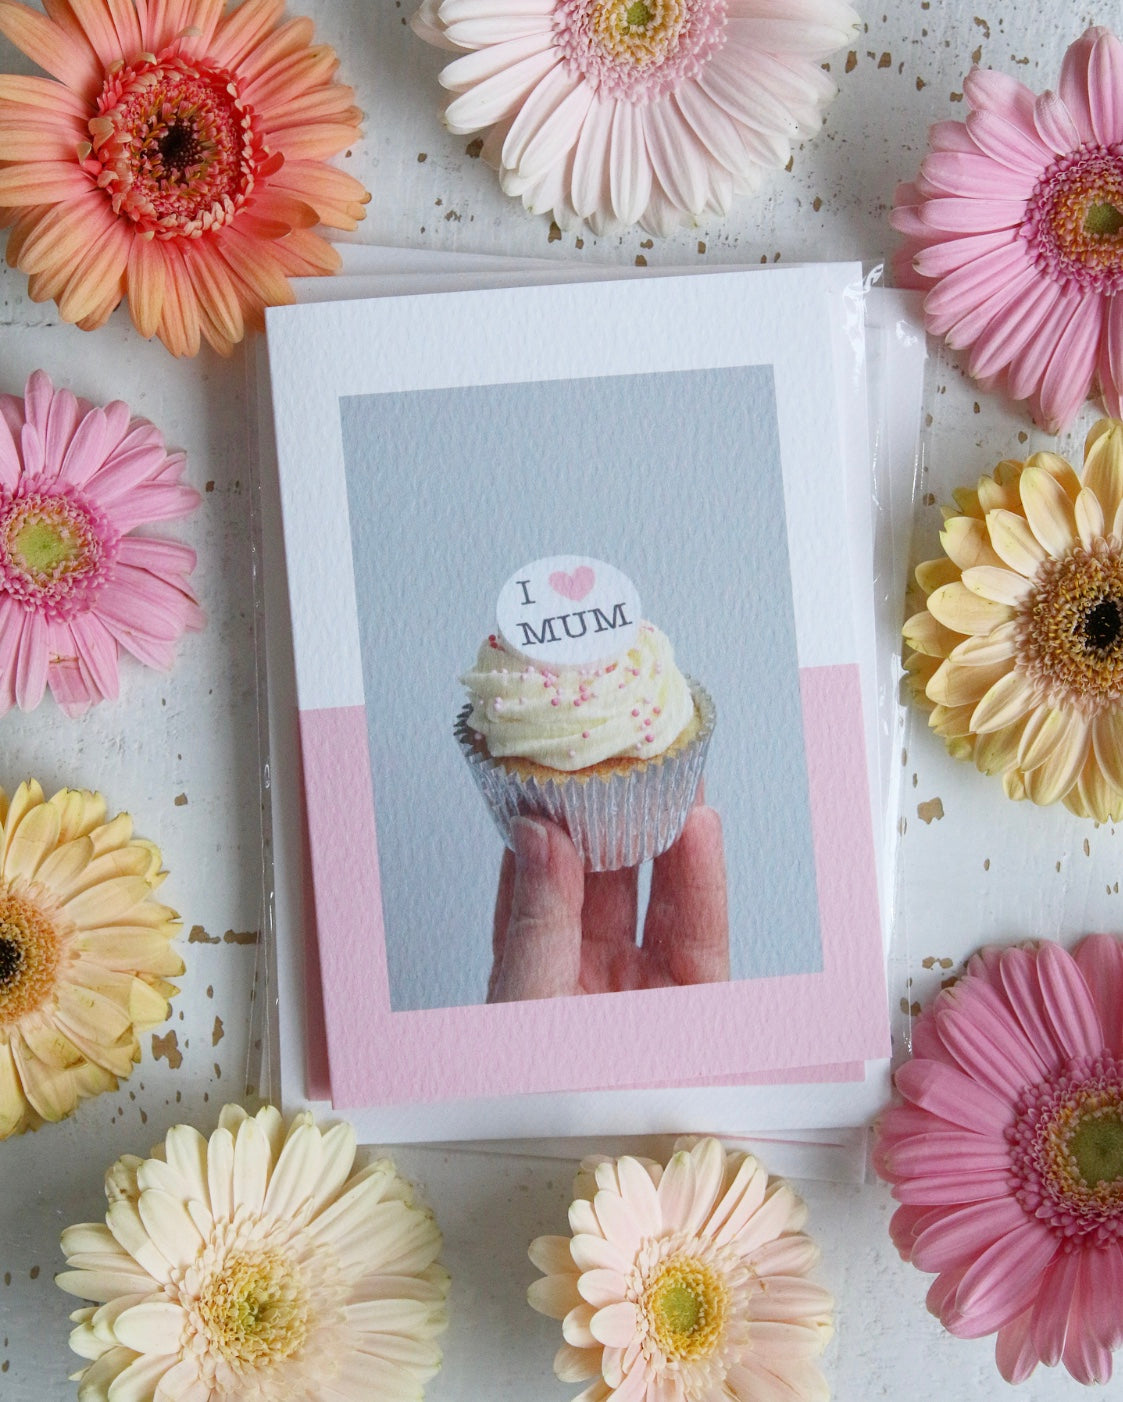 Mother's Day Cupcake Photo Card with Flowers